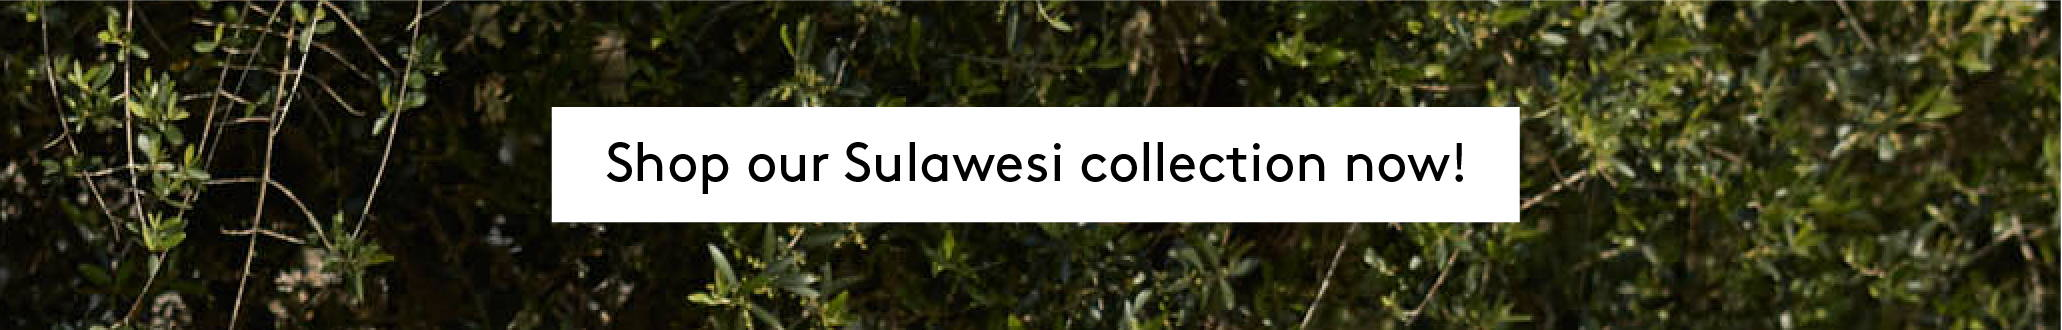 Shop our SULAWESI collection now!